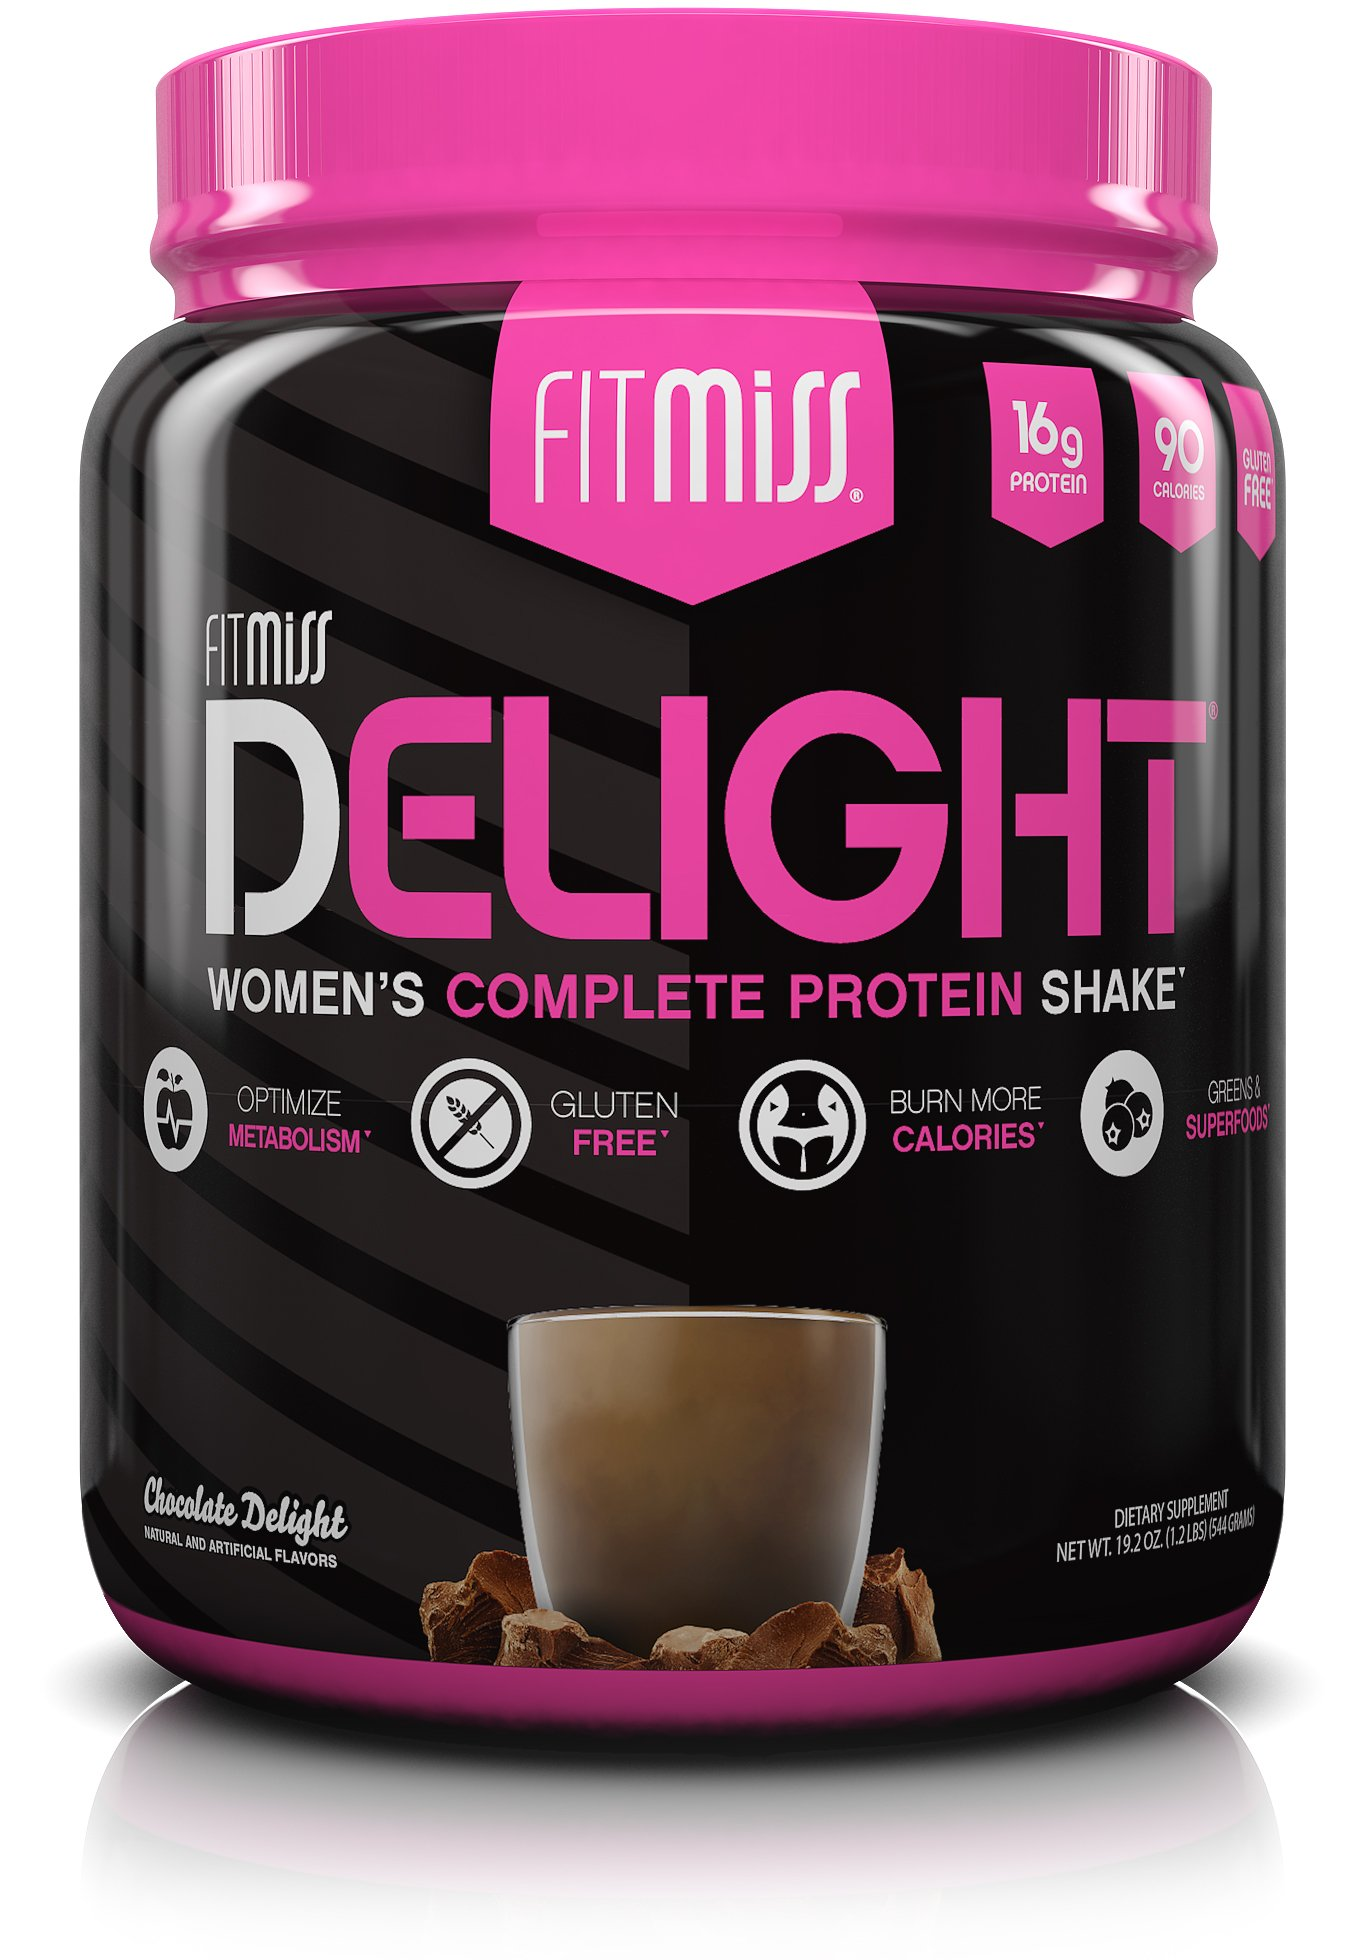 FitMiss Delight Protein Powder, Healthy Nutritional Shake for Women, Whey Protein, Fruits, Vegetables and Digestive Enzymes, Support Weight Loss and Lean Muscle Mass, Chocolate, 1.2 Pound by Muscle Pharm